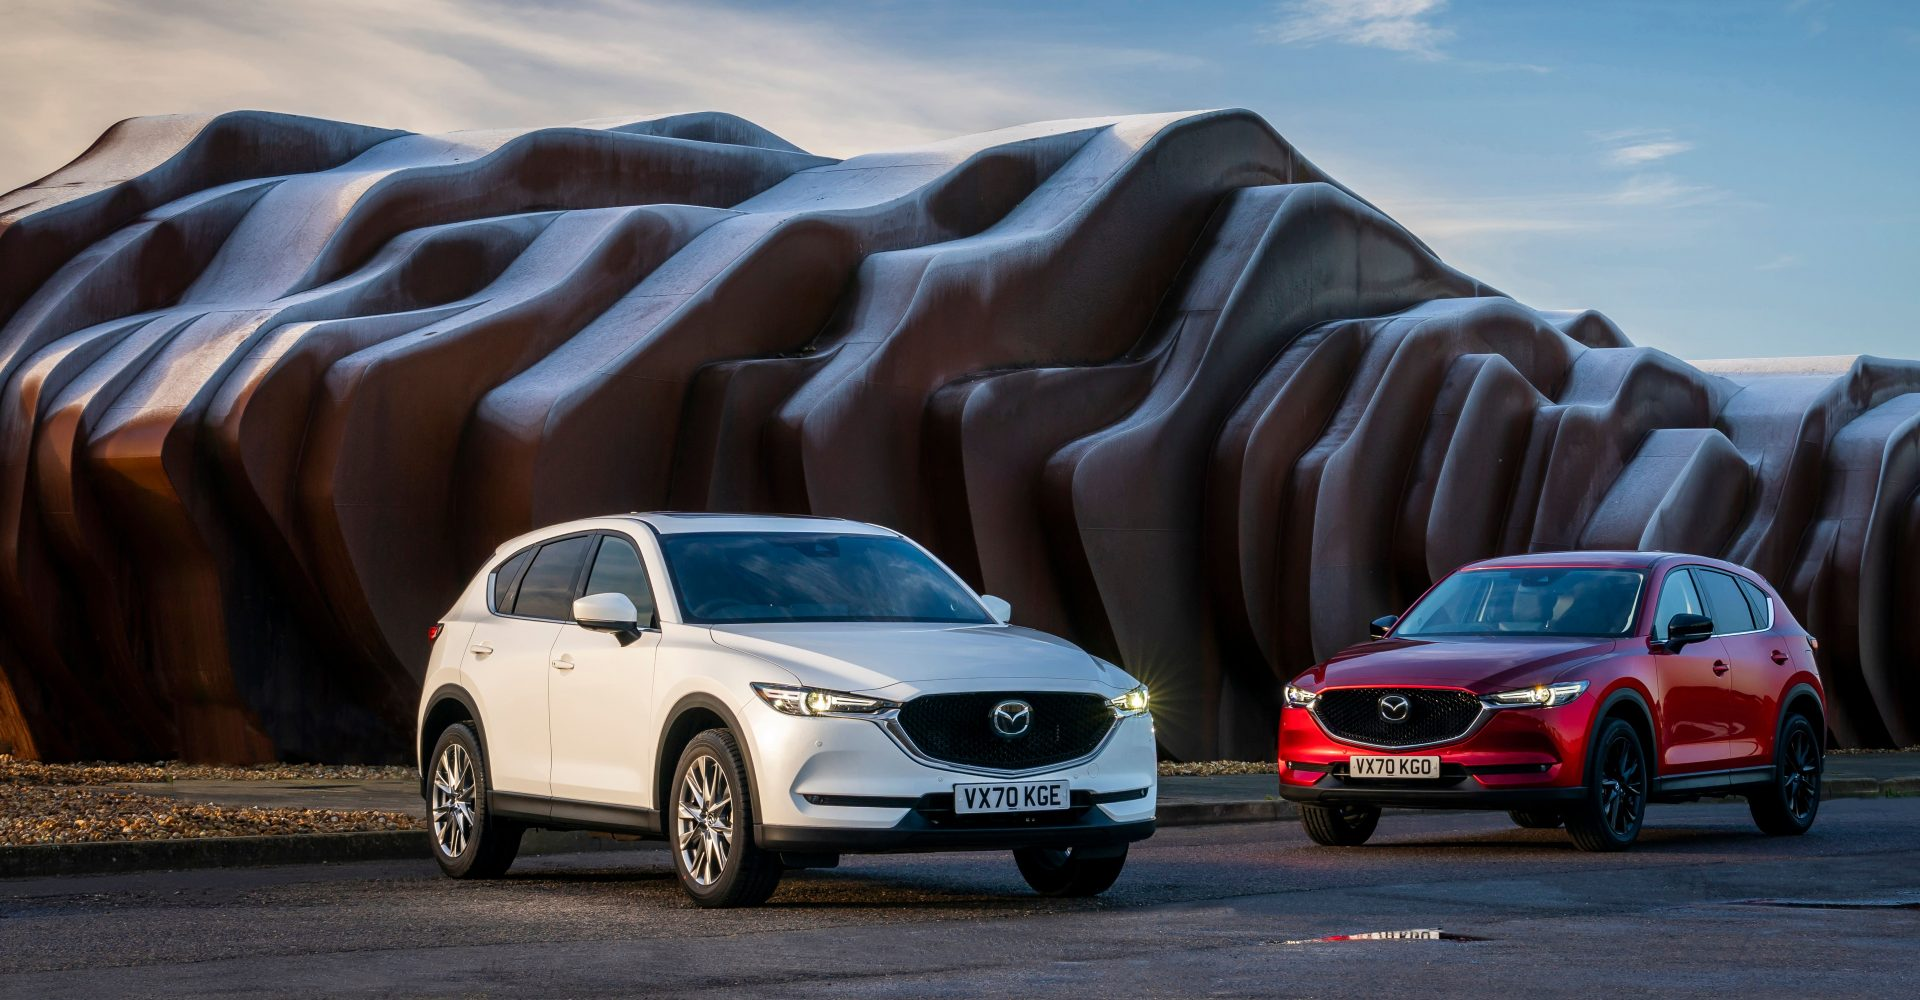 Mazda introduces raft of updates to CX-5